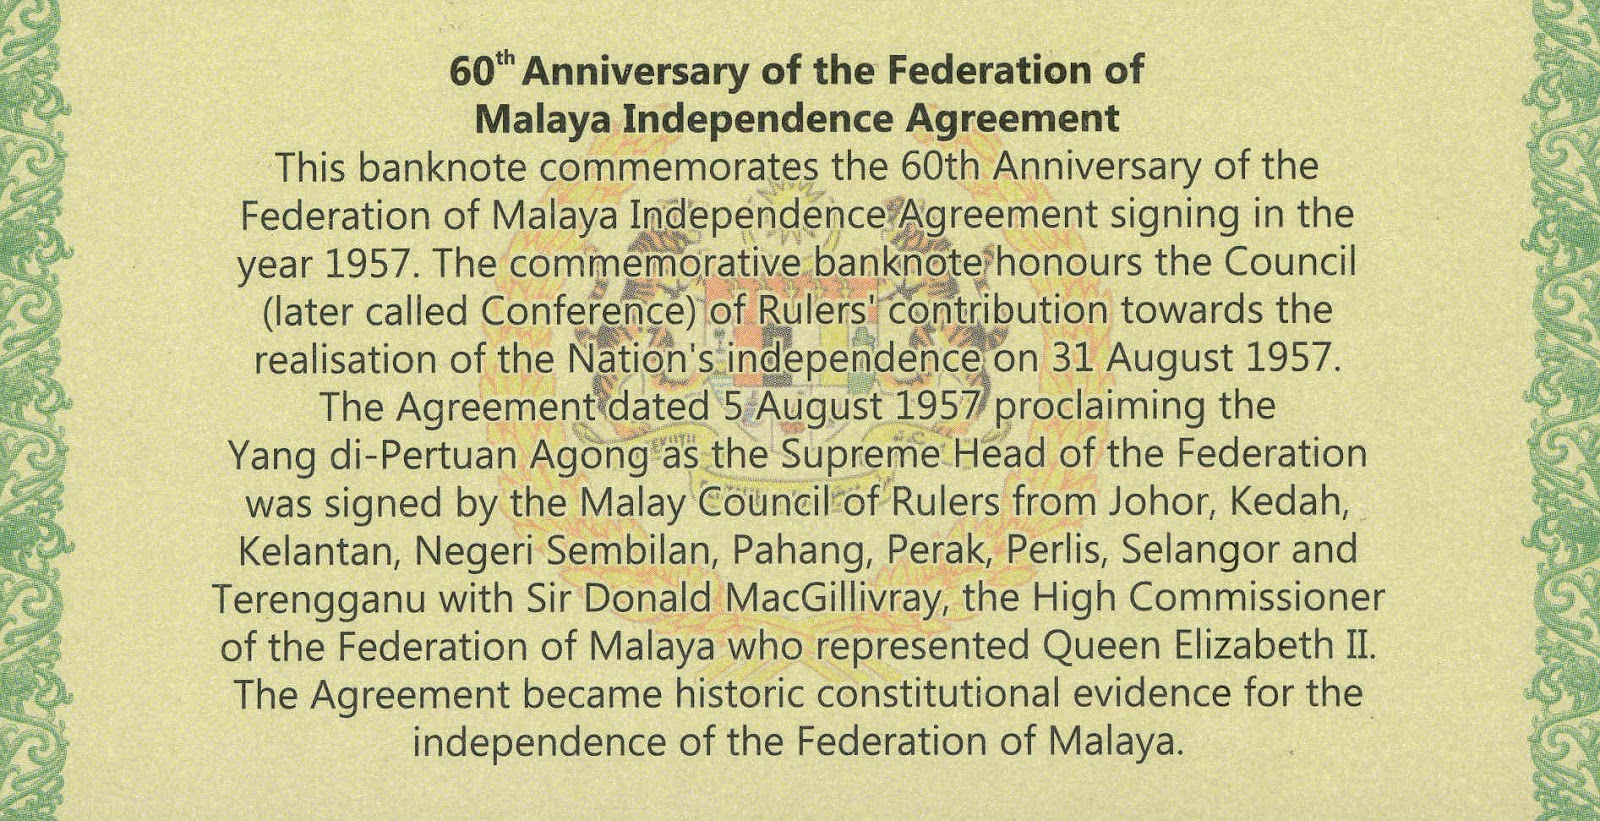 a history of the malayan independence and the role of britain Federation of malay declared independence in 1957 other british territories joined the federation 10 work cited drabble, john the economic history of malaysia ehnet encyclopedia, edited by 1 udviklingsøkonomi grundfag lecture 26: the role of the state based on irma adelman's chapter 2.